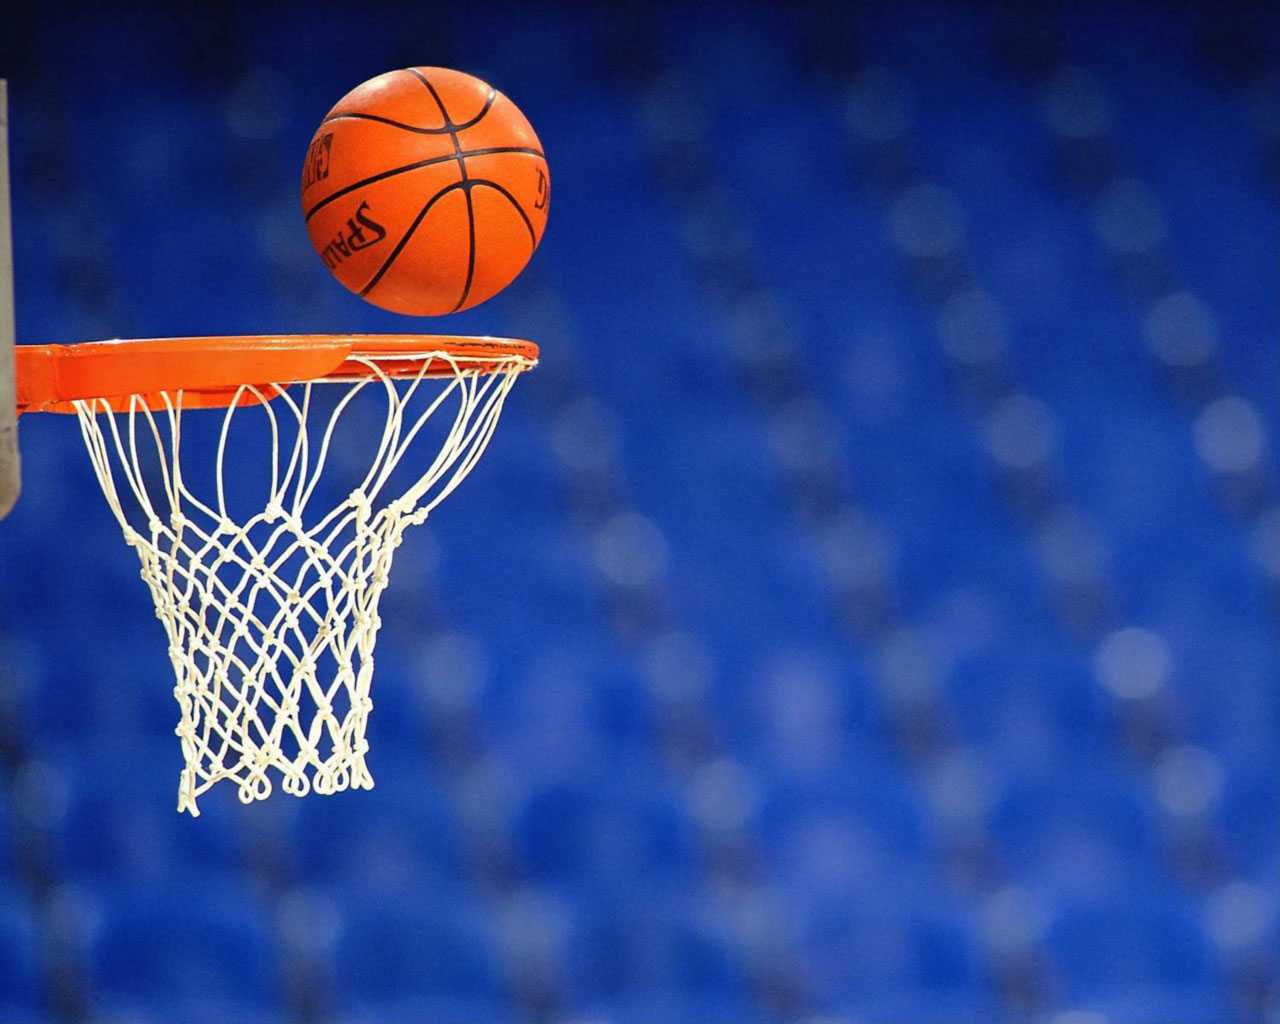 hd basketball wallpapers and desktop backgronds all hd wallpapers